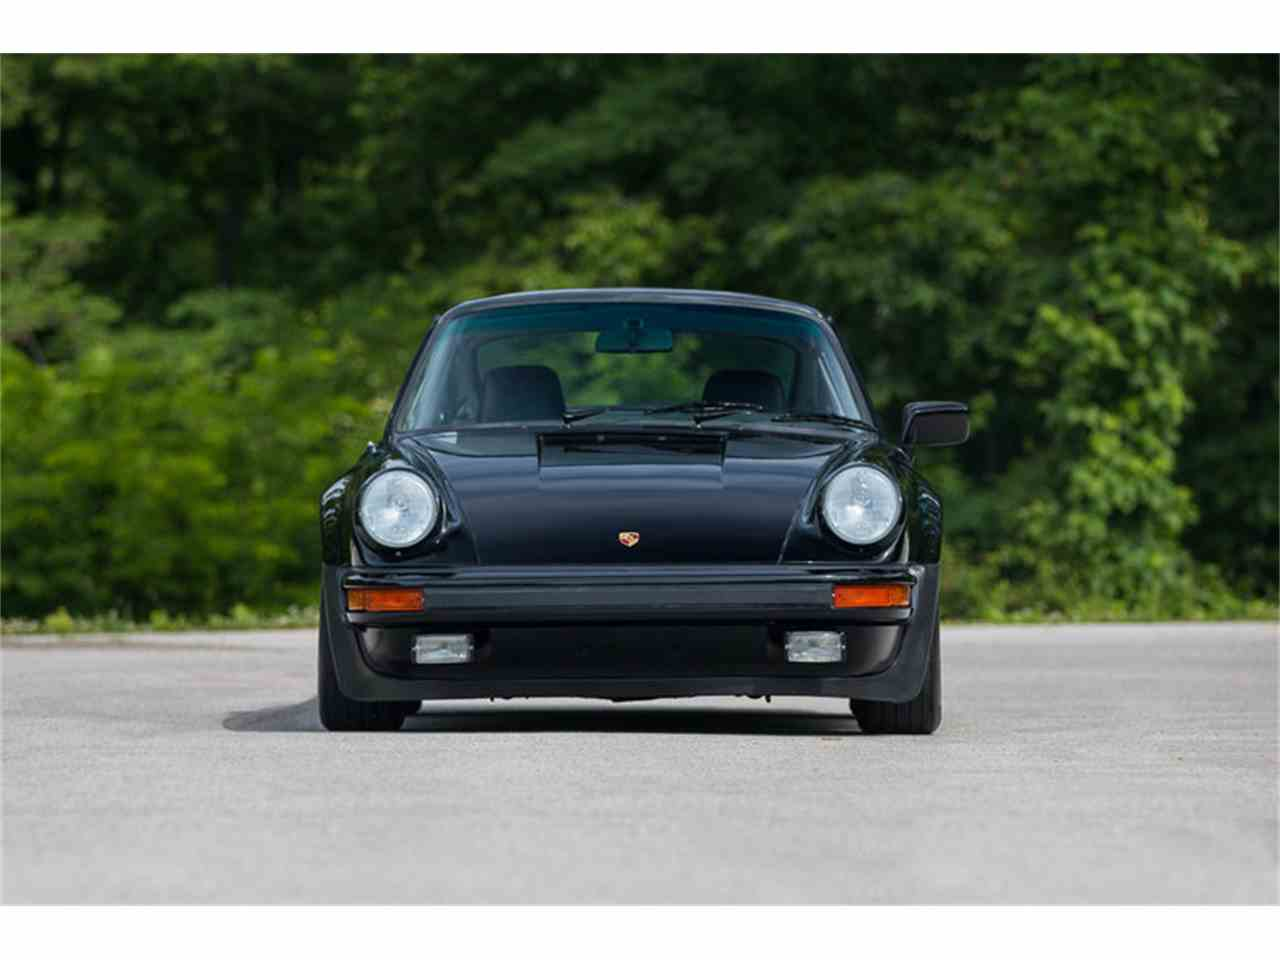 Large Picture of 1976 930 located in St. Charles Missouri Offered by Fast Lane Classic Cars Inc. - LTQ4